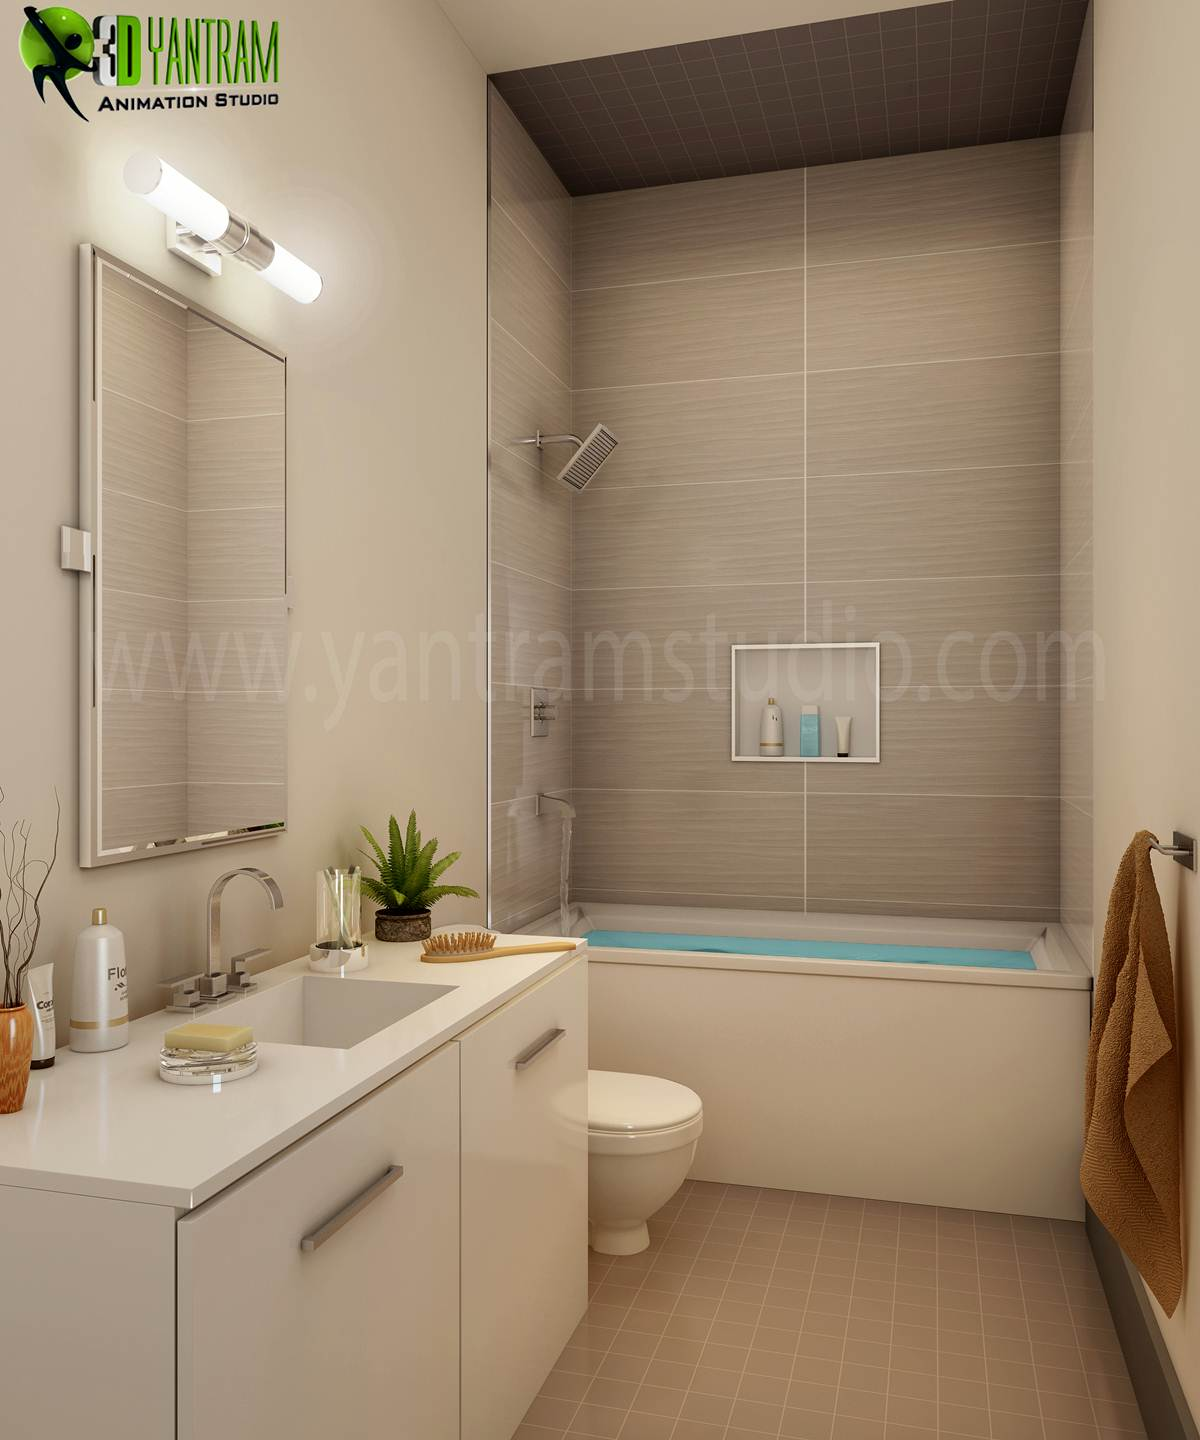 3d, animation, architectural, bathroom, bedroom